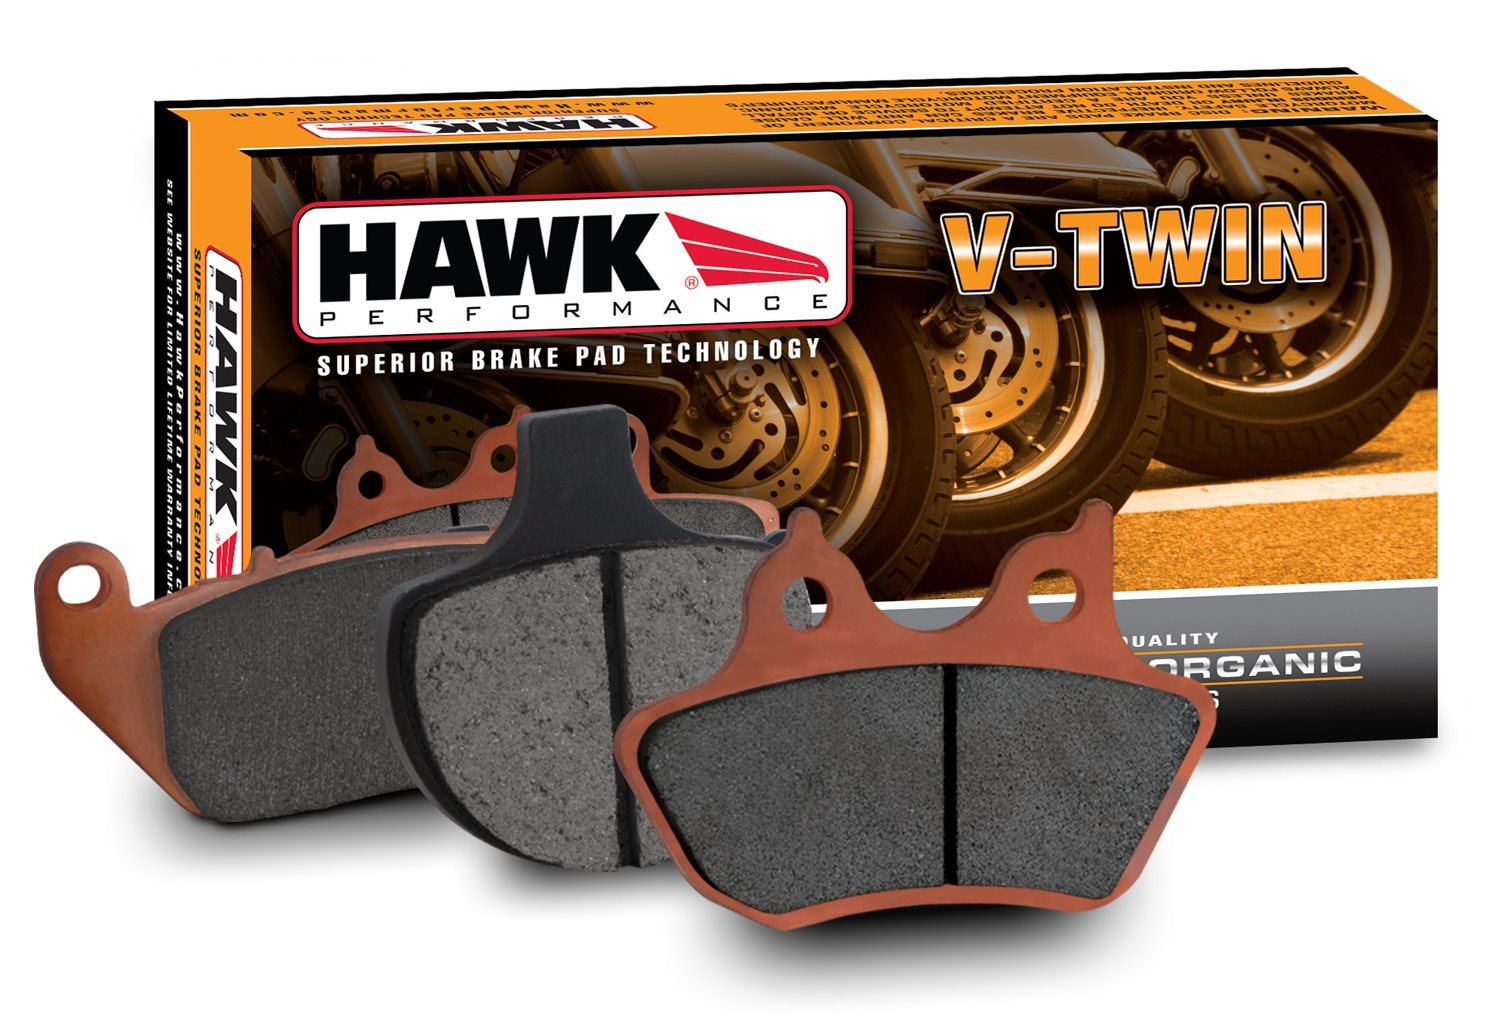 Hawk Performance HMC140HH Metallic Motorcycle Brake Pad Set